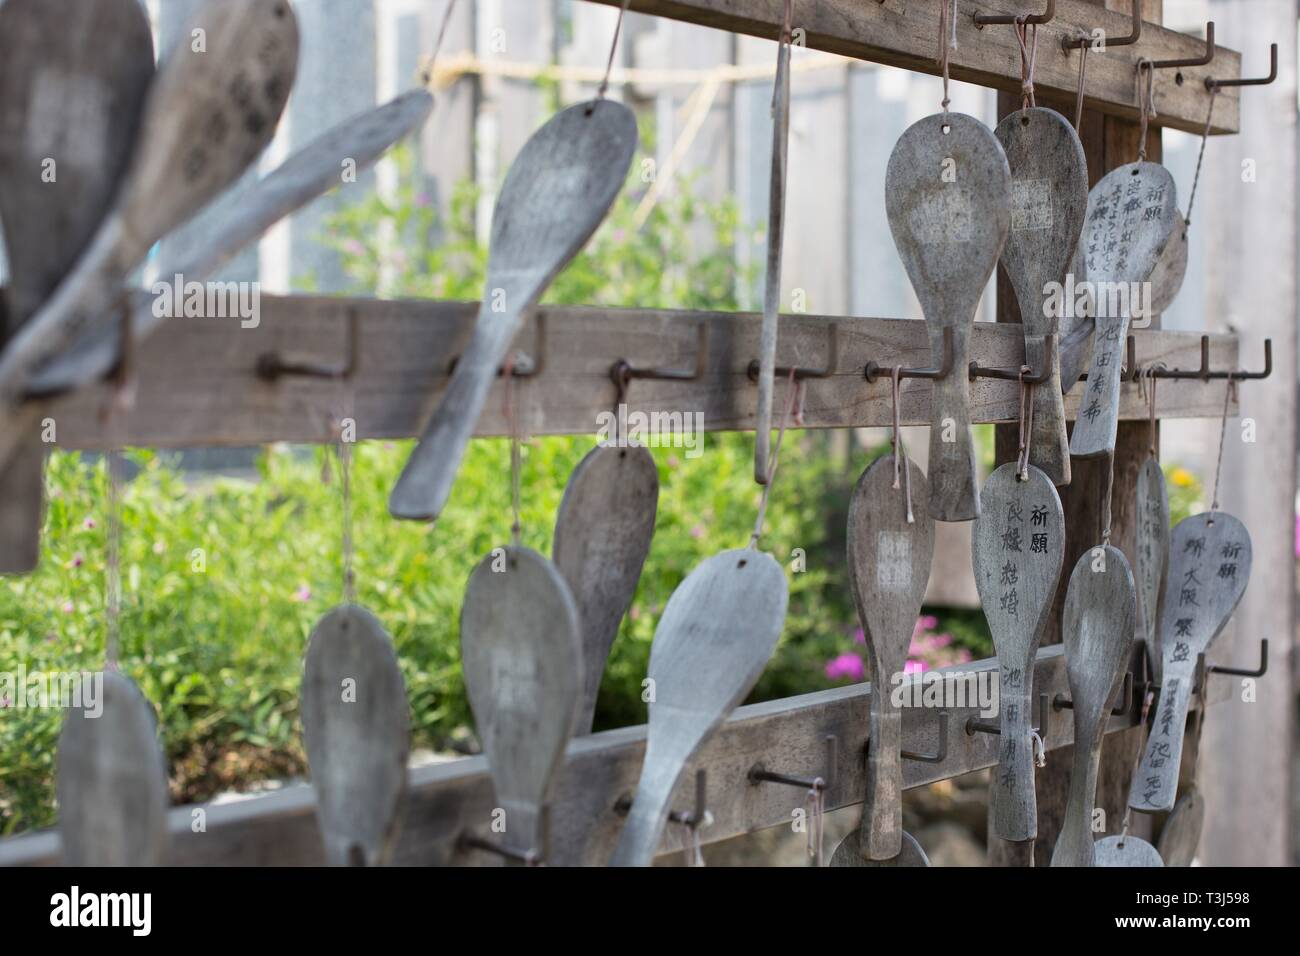 Wooden ema (prayer tablets) hanging in a shrine in a park in Sakai City, Osaka, Japan. Stock Photo